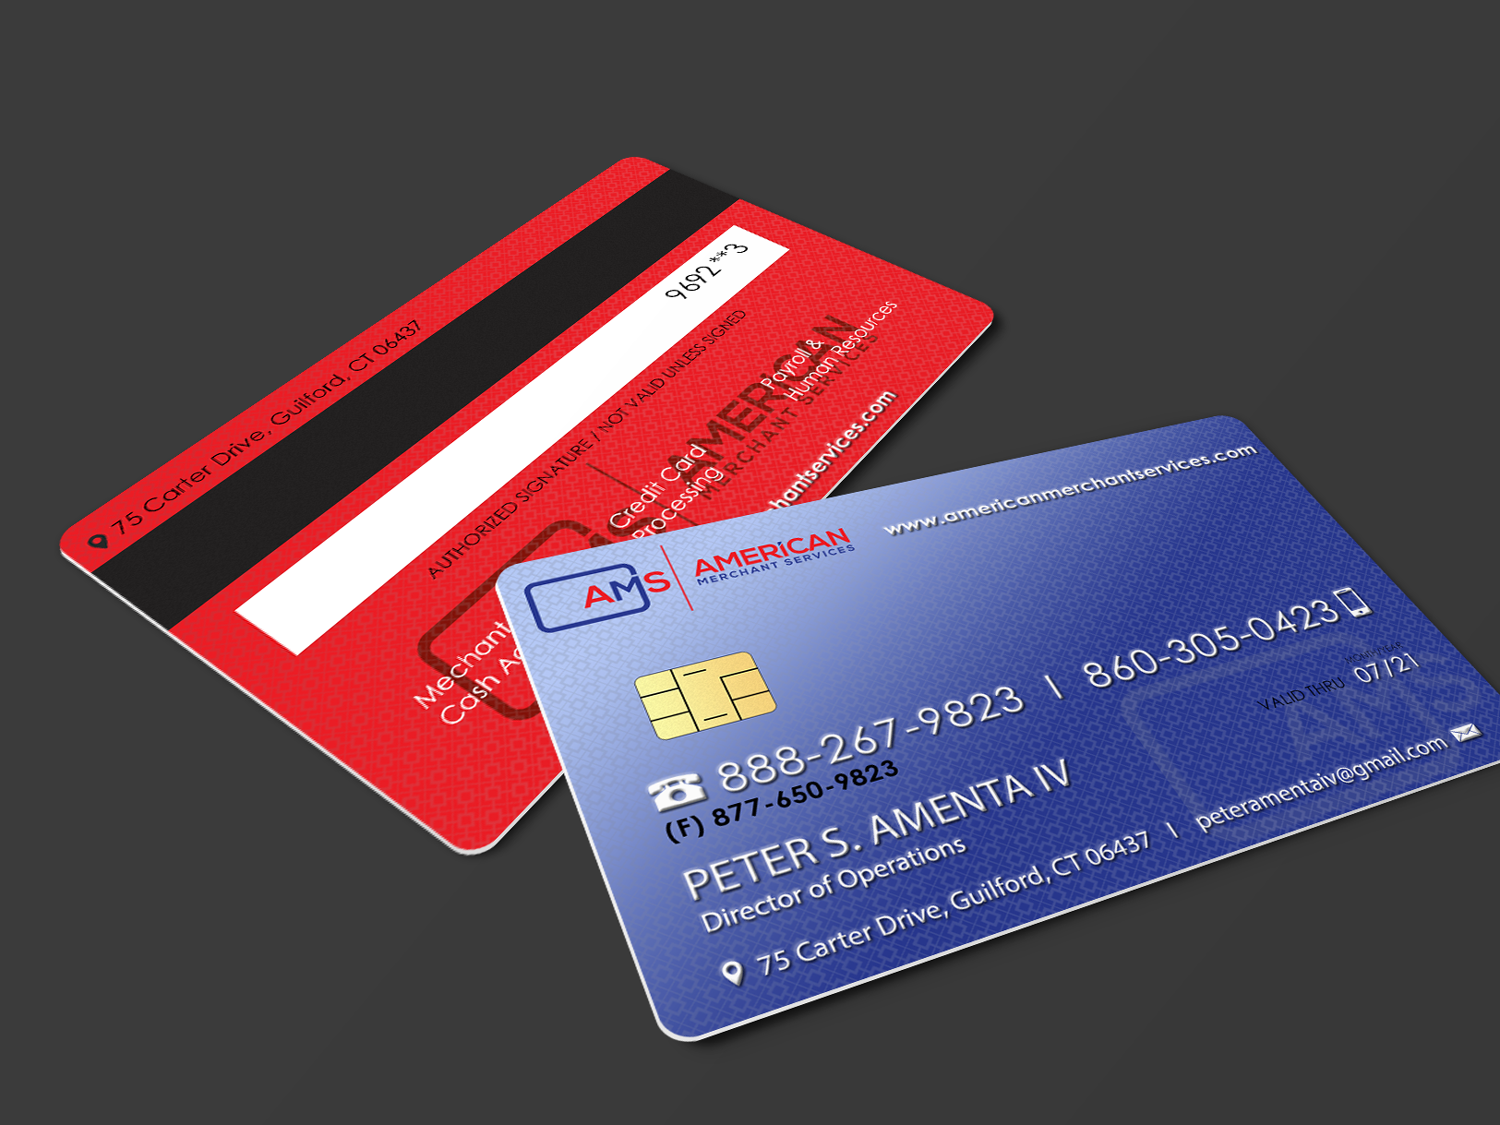 Elegant playful credit card business card design for american business card design by riz for american merchant services llc design 15417511 colourmoves